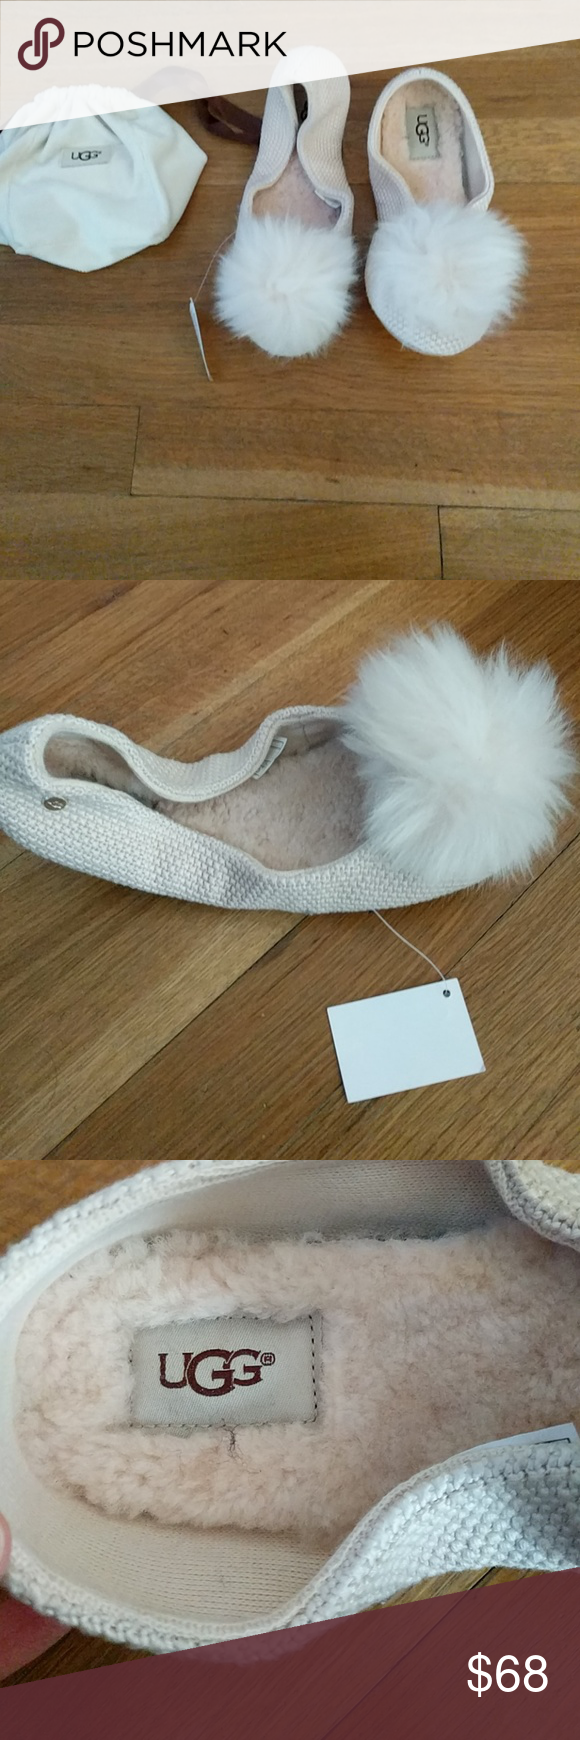 4e41bf42fd6 Ugg Andi Pom Pom Slippers Brand New with Tags. A softer take on ...